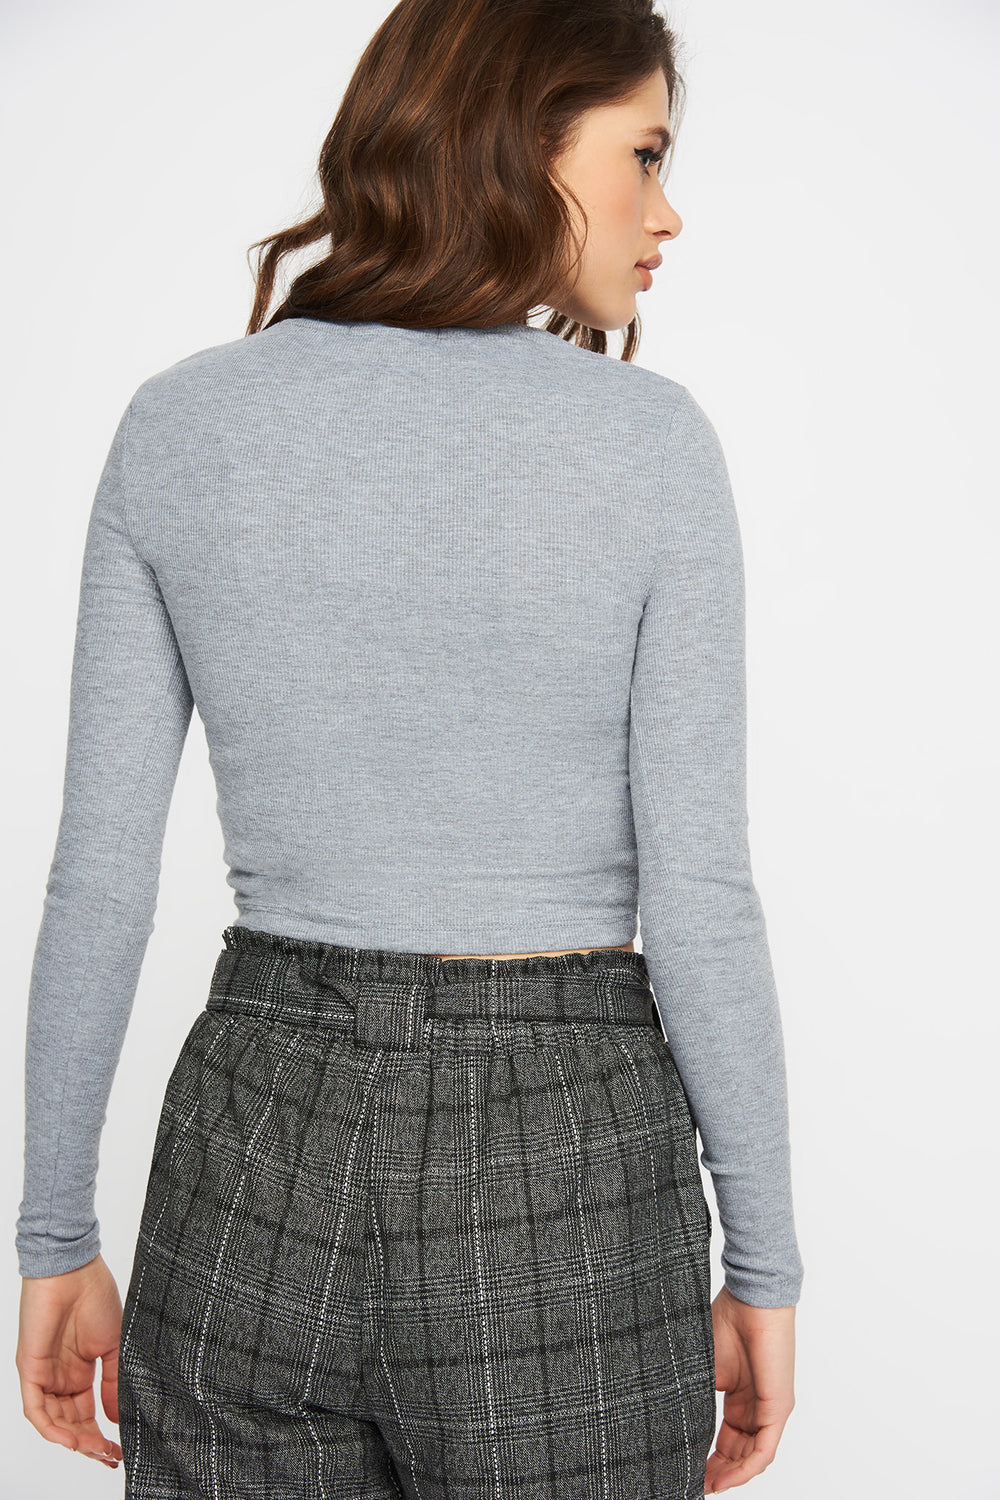 Ribbed Cropped Long Sleeve Heather Grey